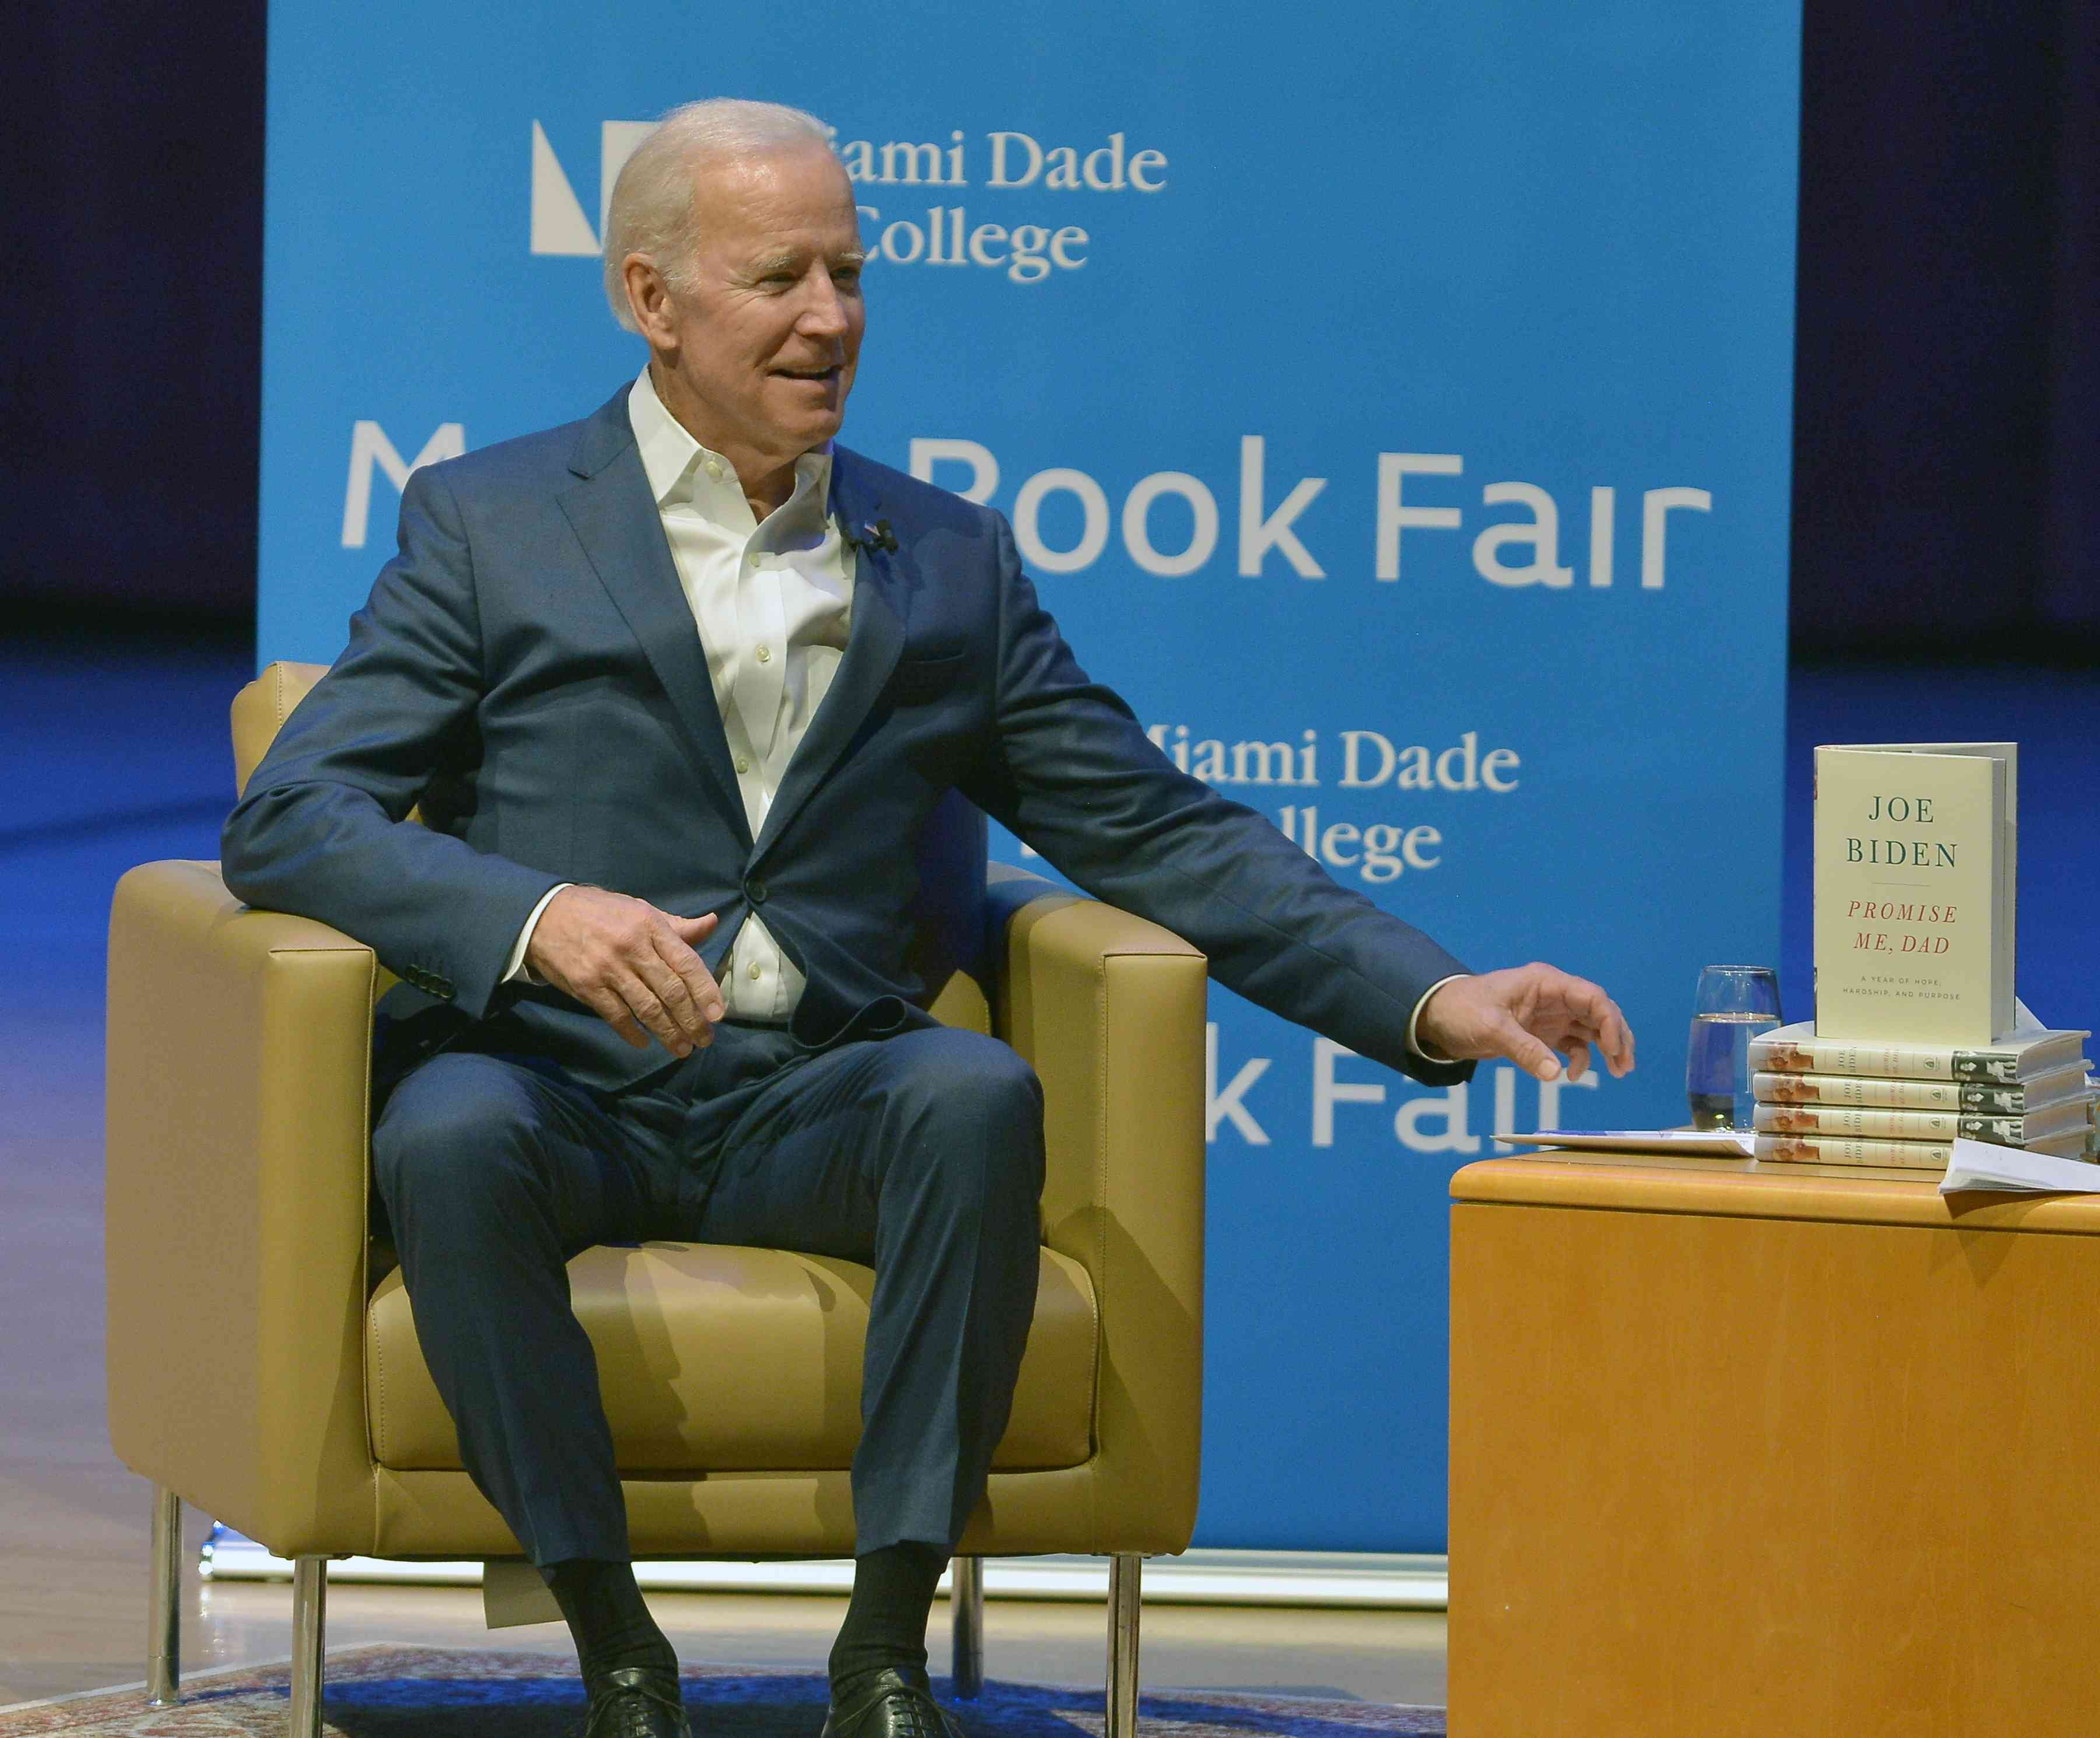 Joe Biden sitting in a chair in front of a blue background, with a stack of books next to him